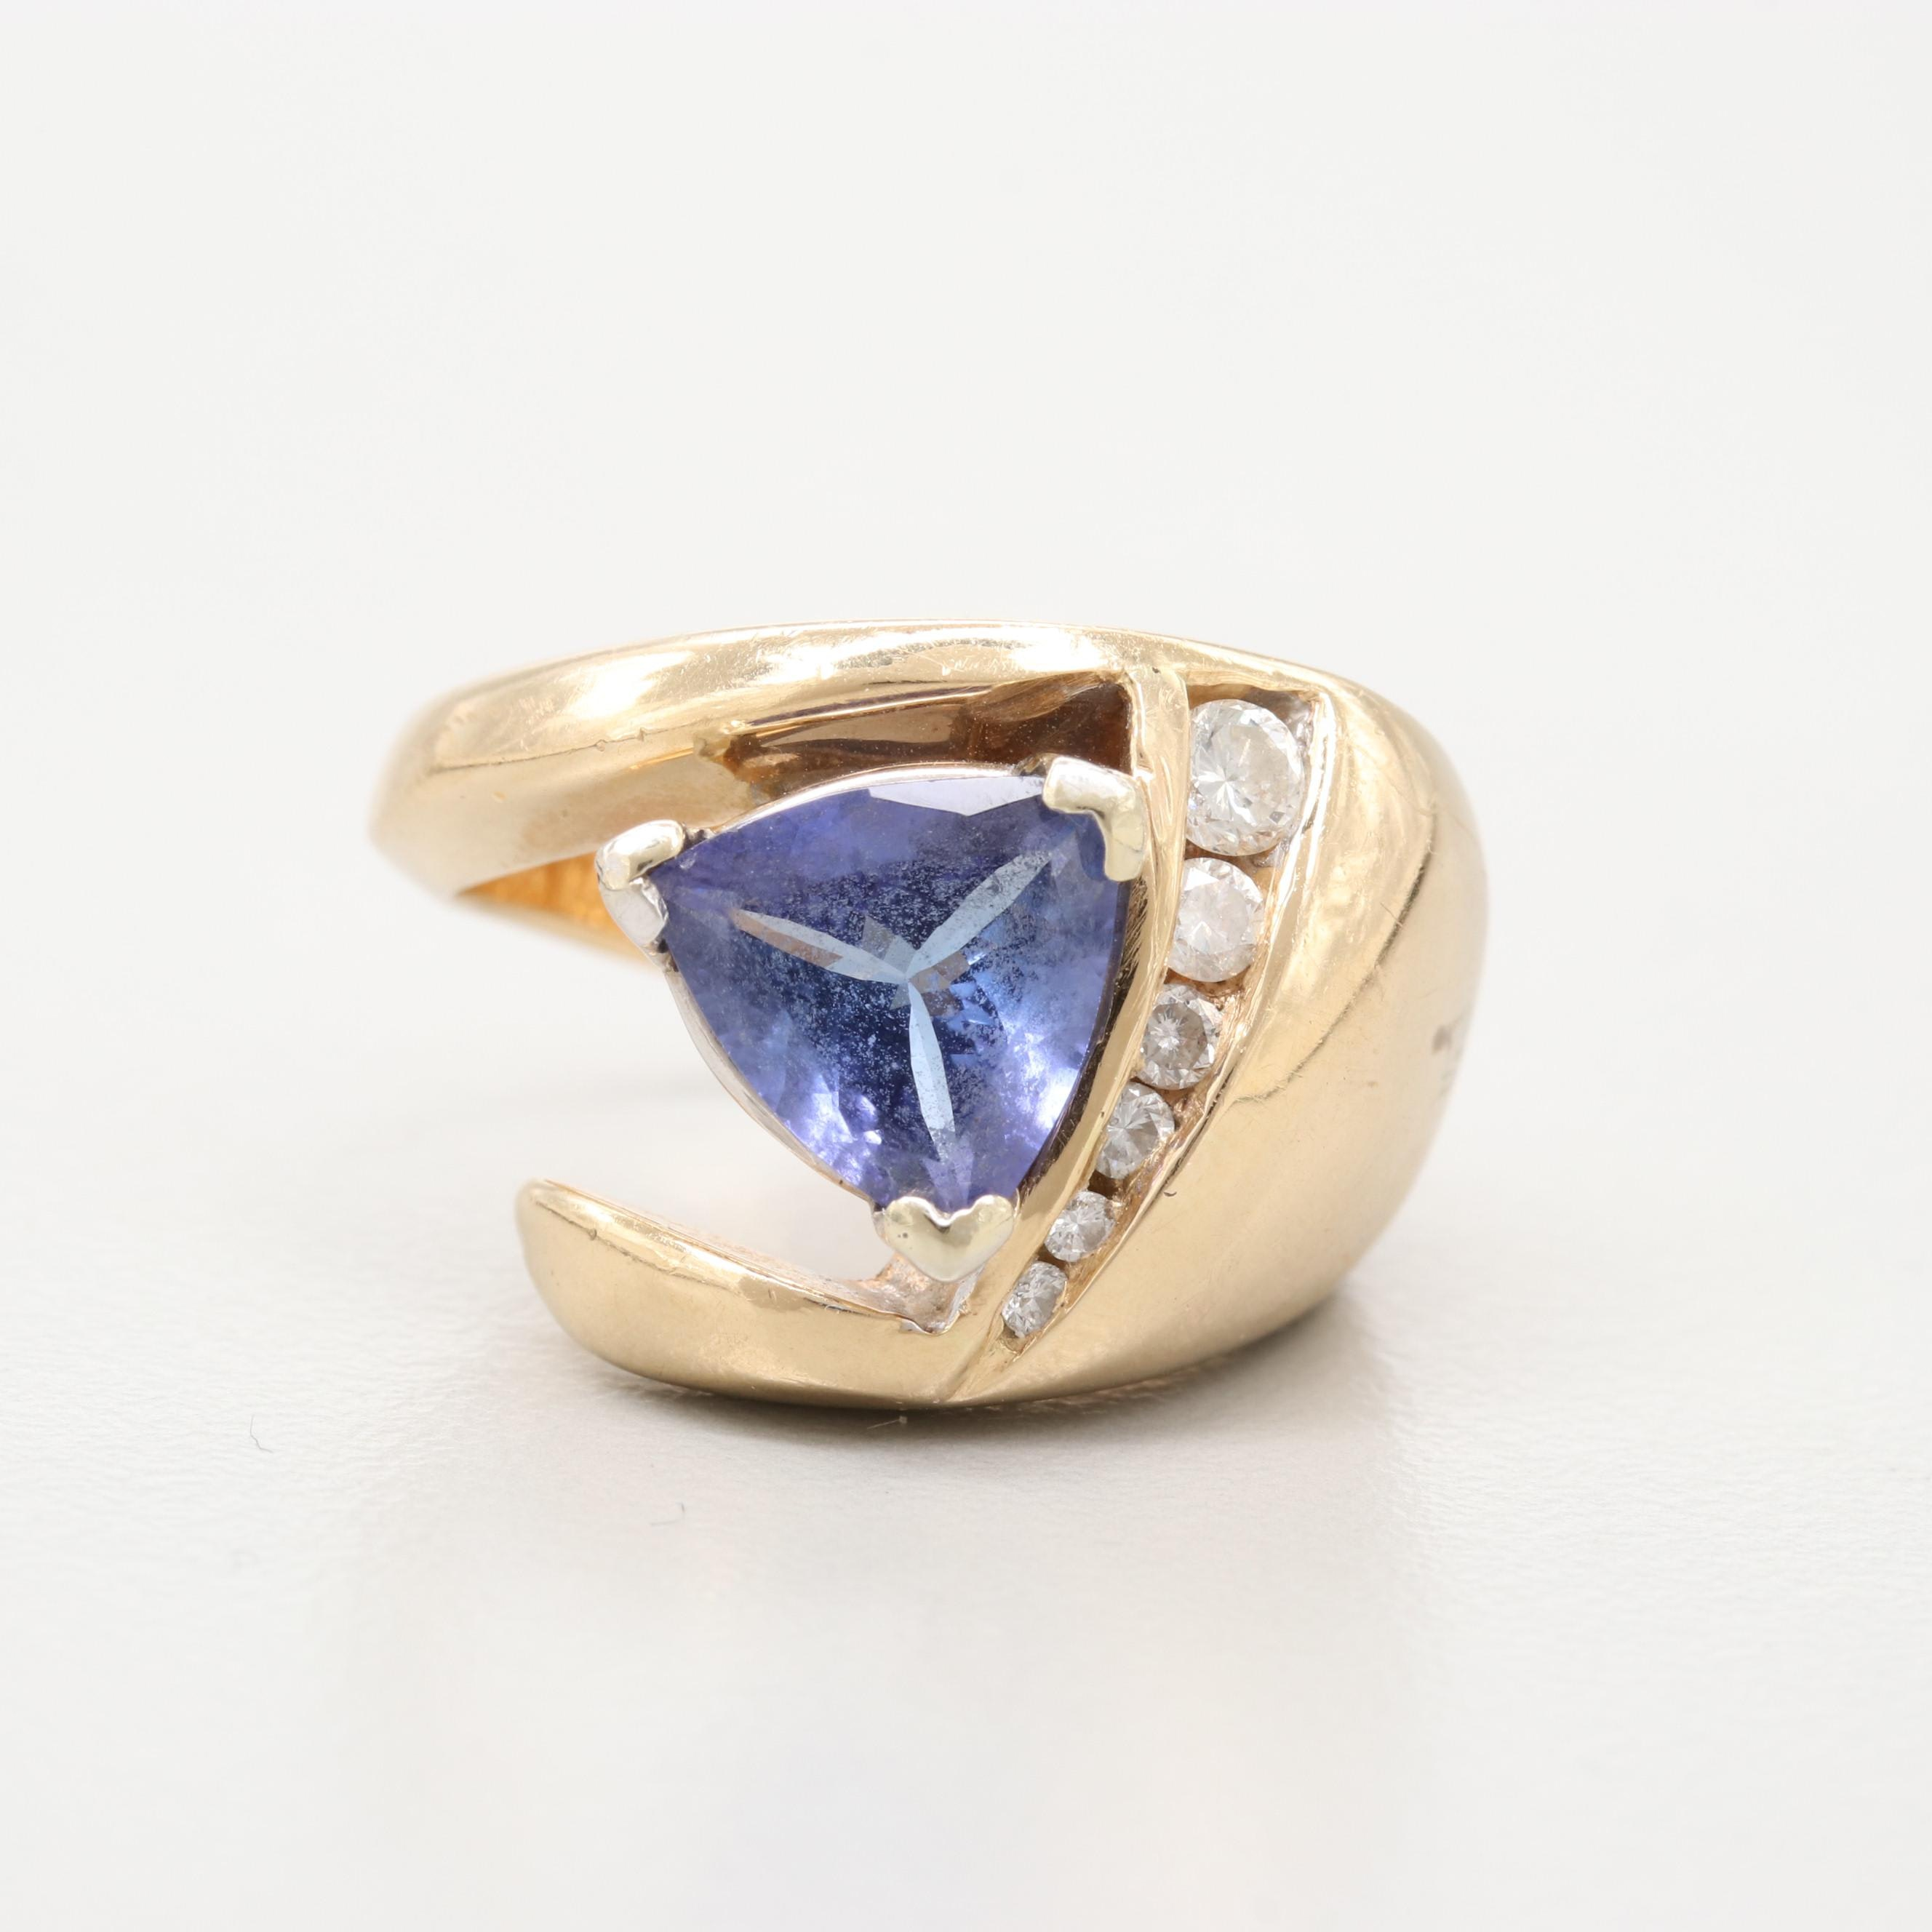 14K Yellow Gold 1.48 CT Tanzanite and Diamond Ring